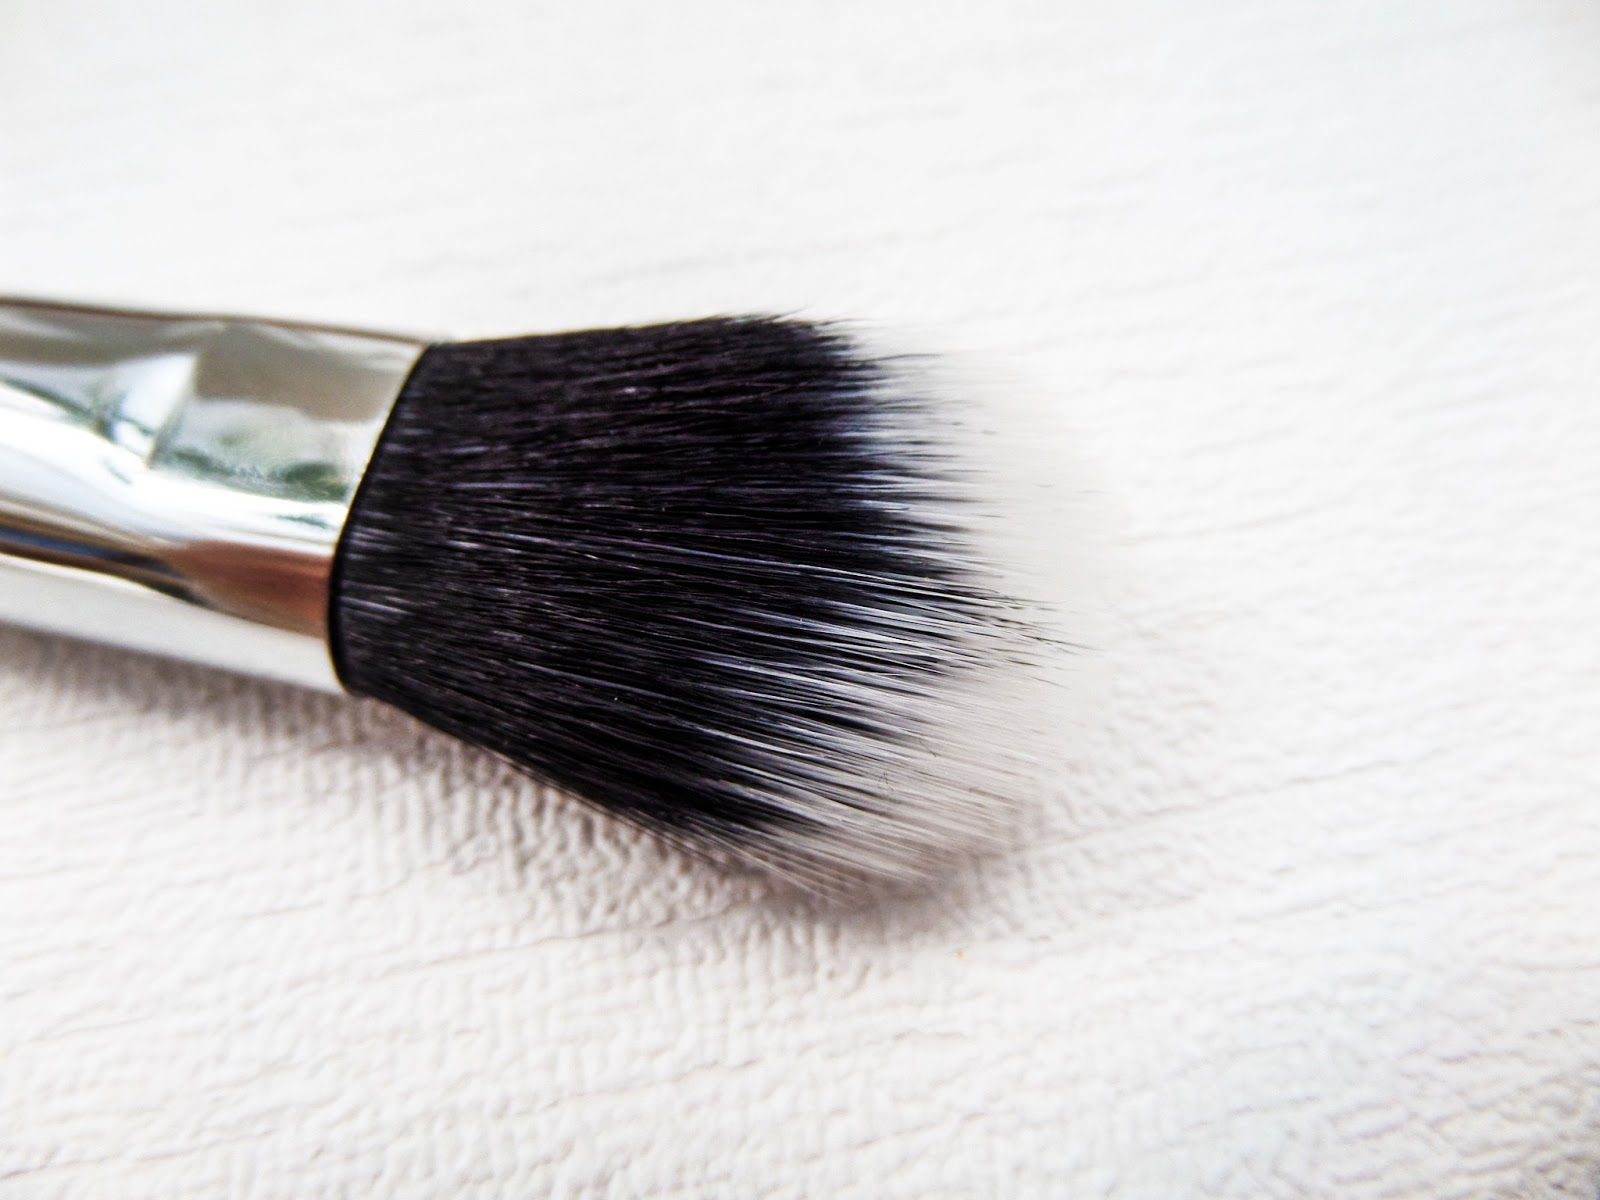 Tapered Duo Fibre Blush brush (C427) Crownbrush